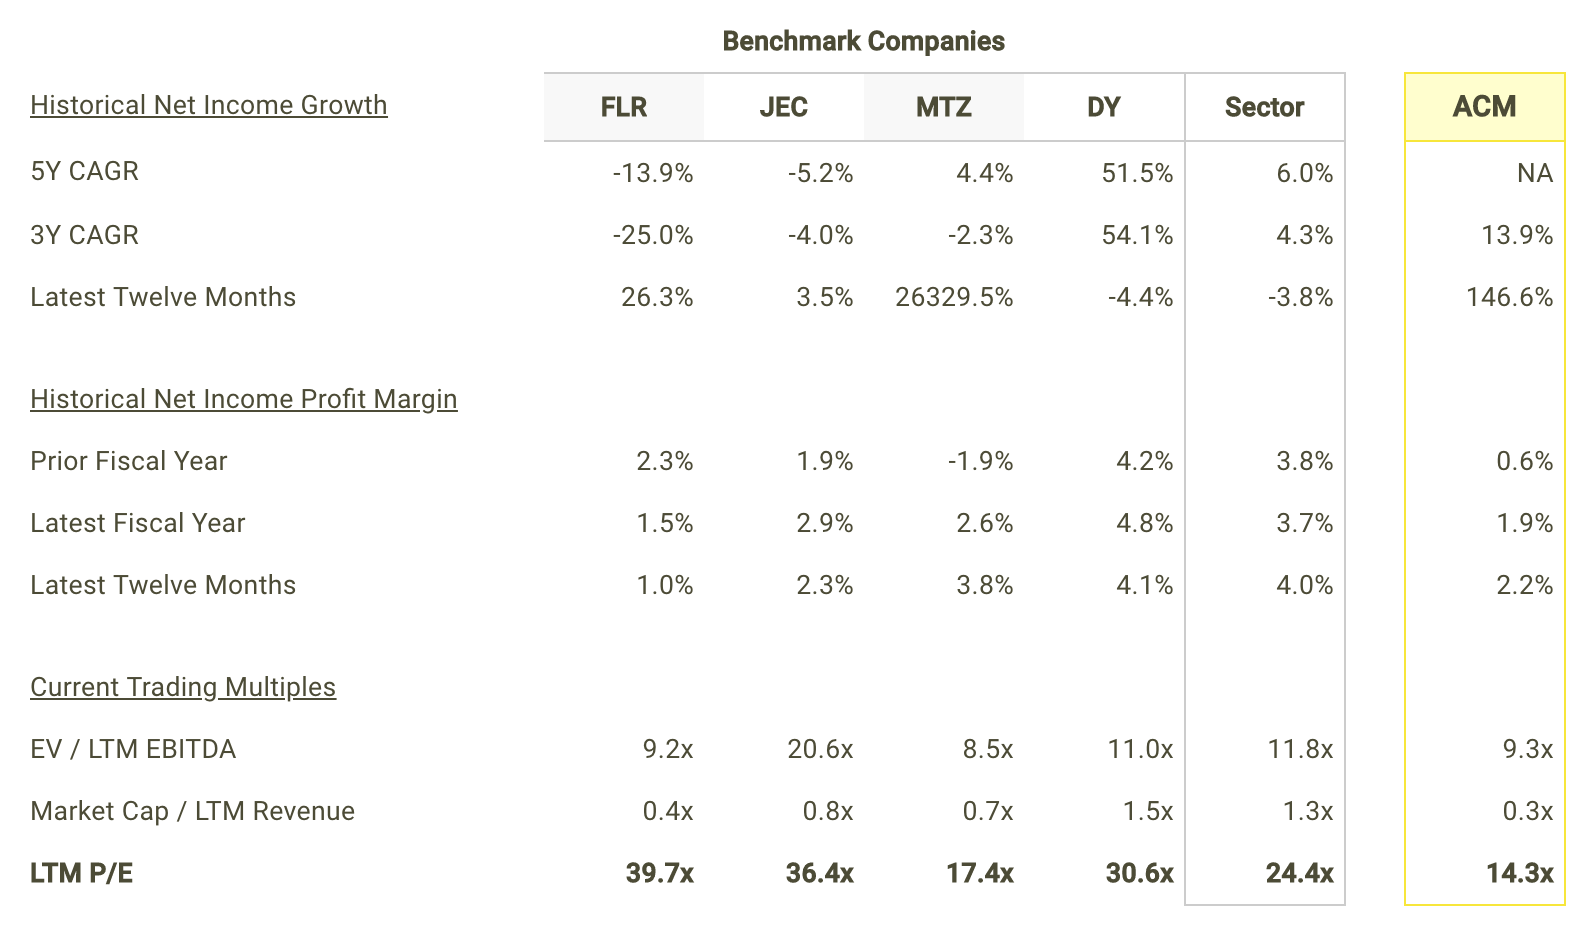 ACM Net Income Growth and Margins vs Peers Table